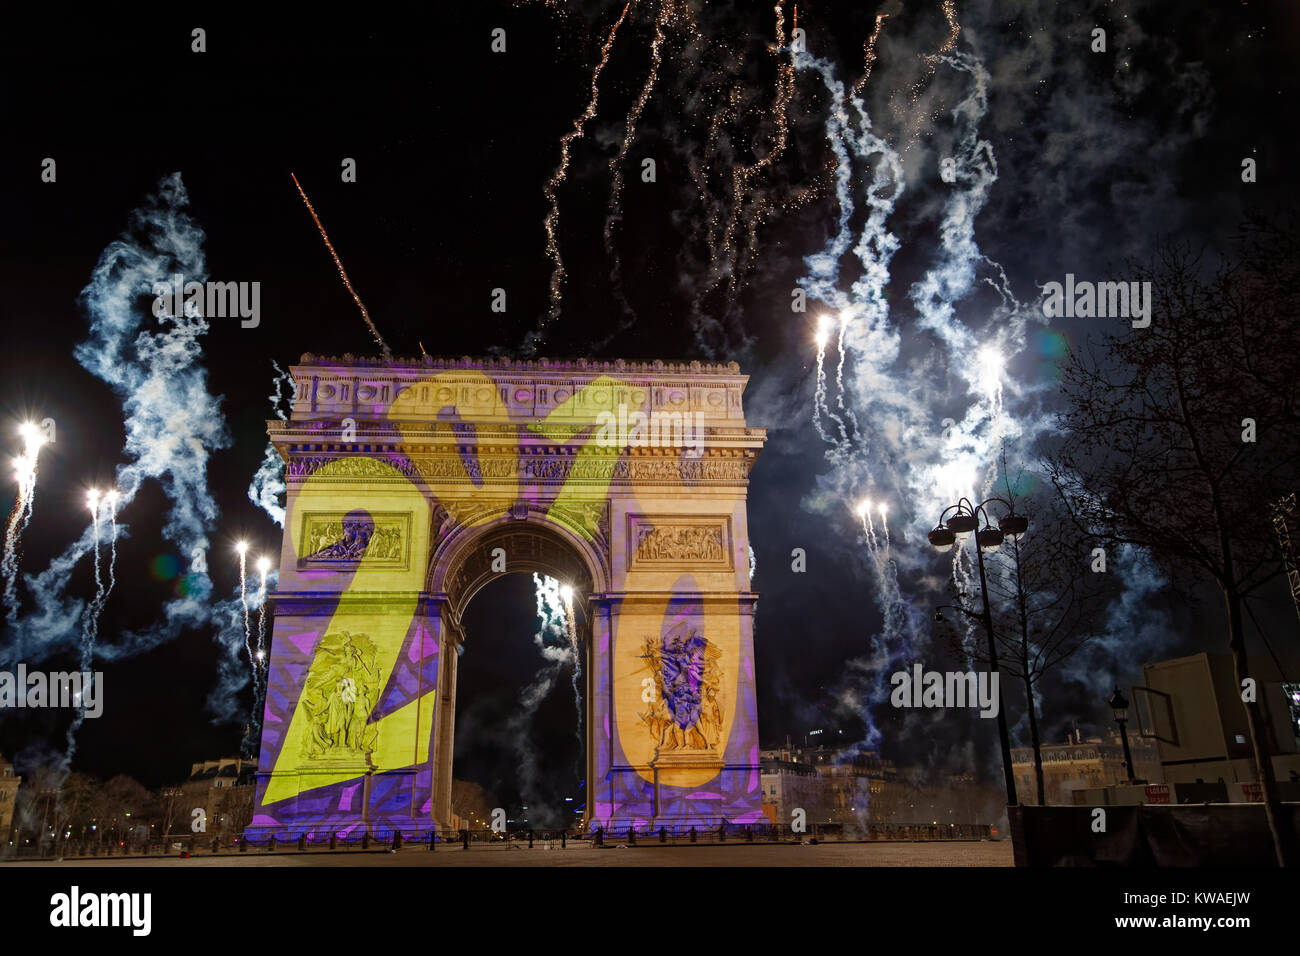 Paris, France. 1st Jan, 2018. Fireworks at midnight was shot from the top of the Arc de Triomphe on January 1, 2018 - Stock Image